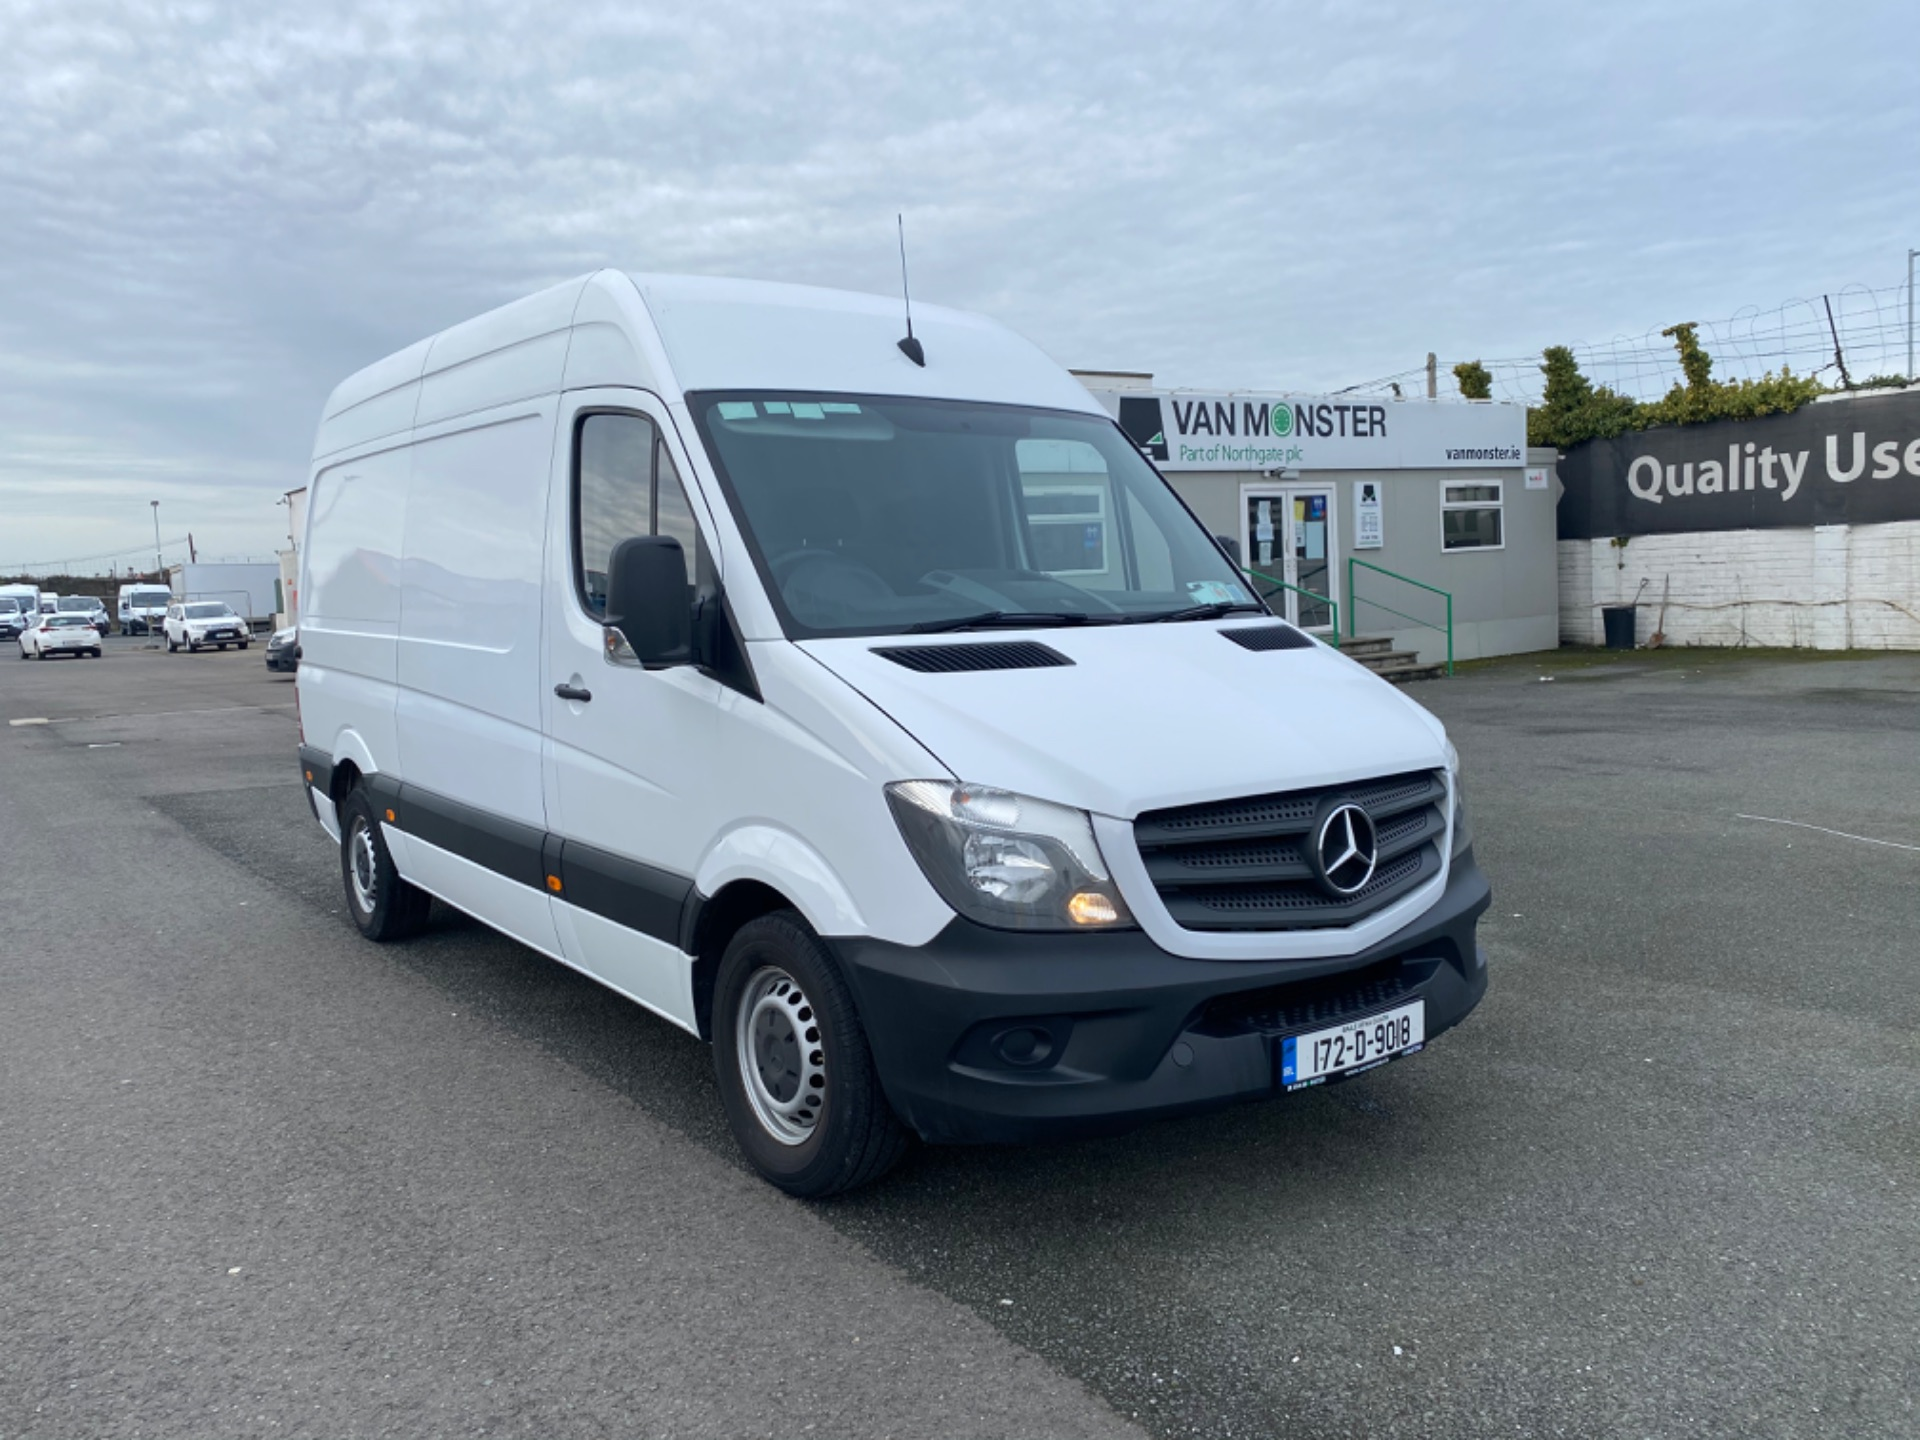 2017 Mercedes-Benz Sprinter 314/36 EU6 6DR (172D9018) Thumbnail 1